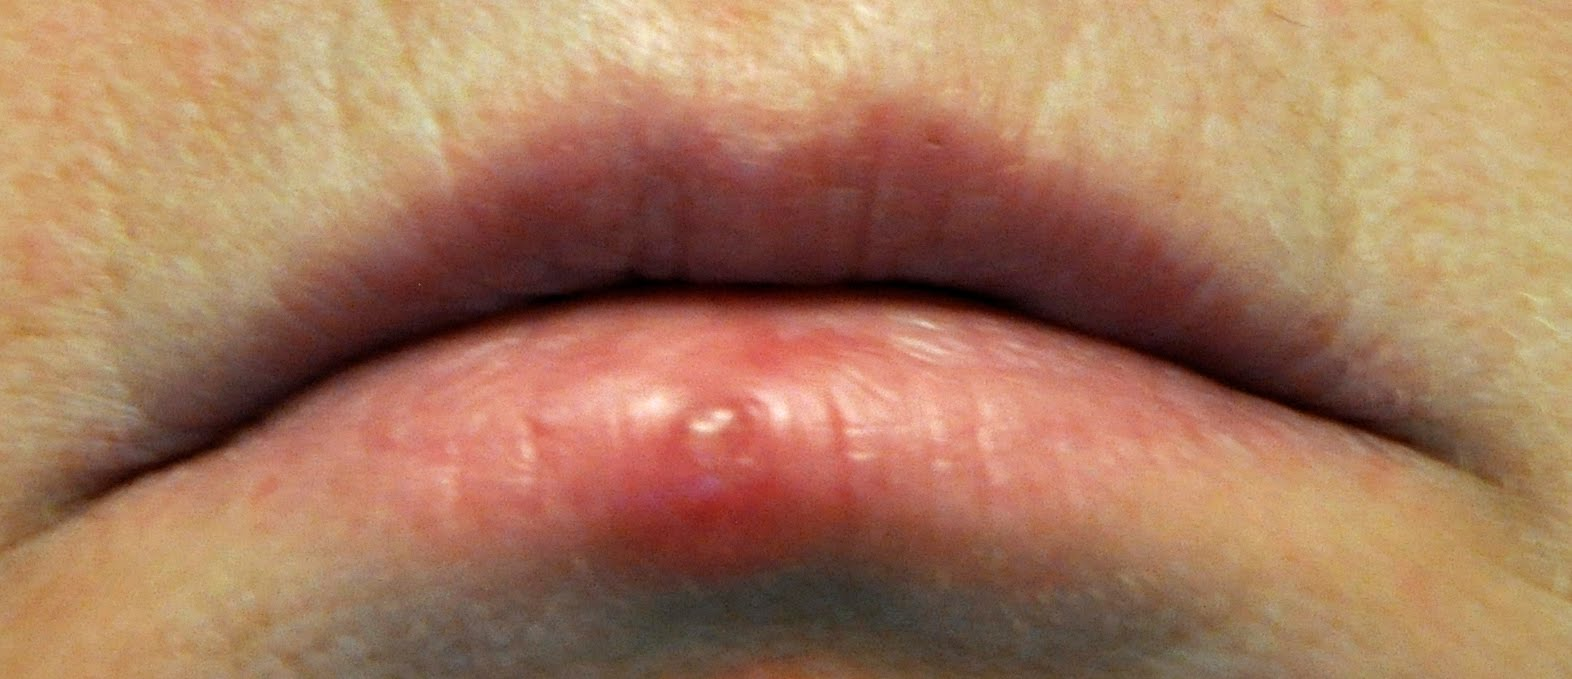 what is herpes symptoms eye